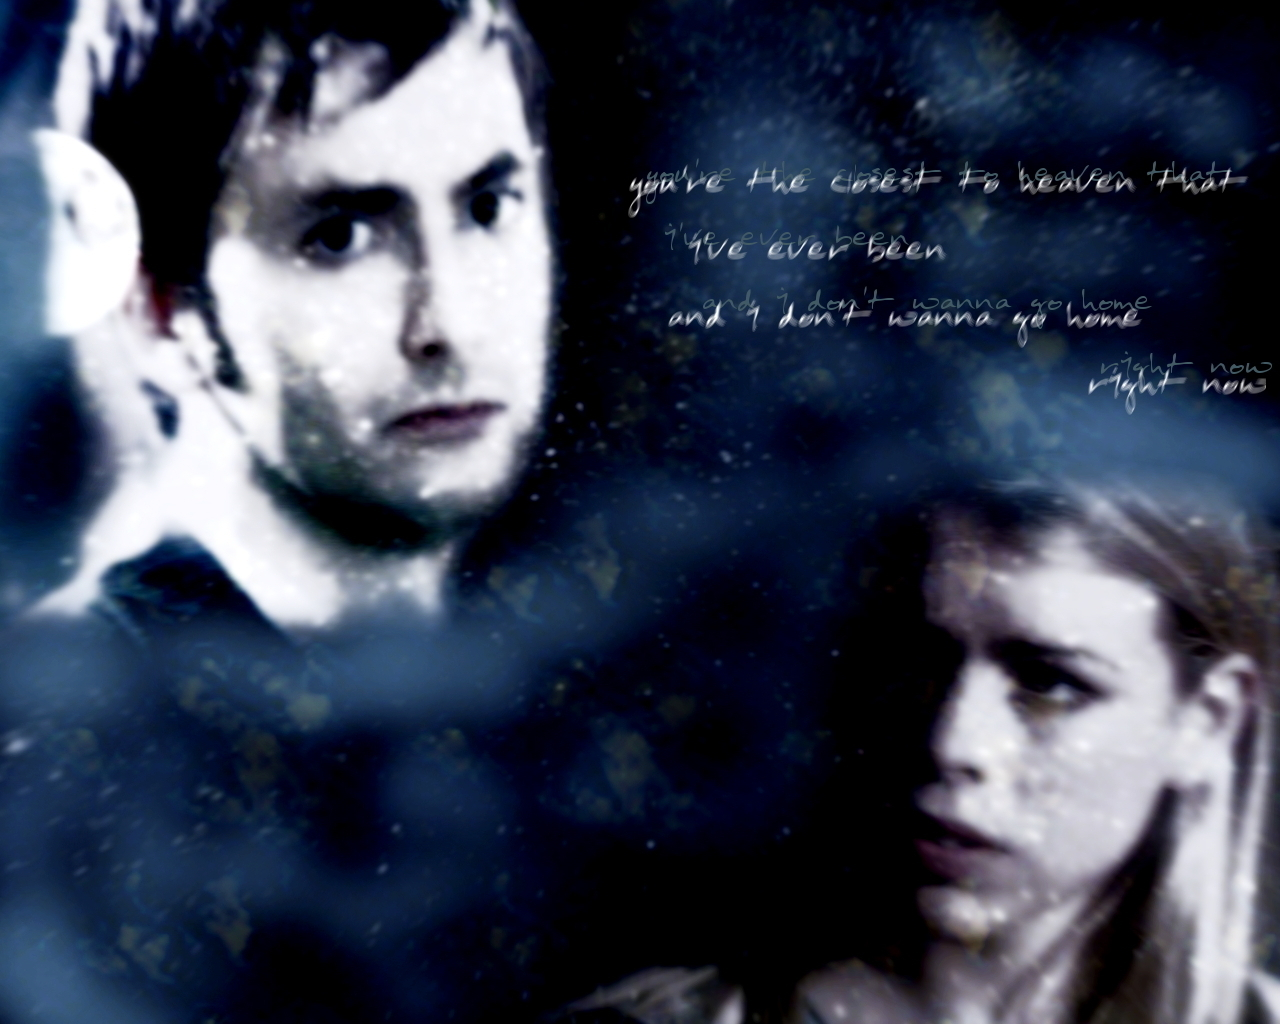 Doctor Who Rose/Doctor